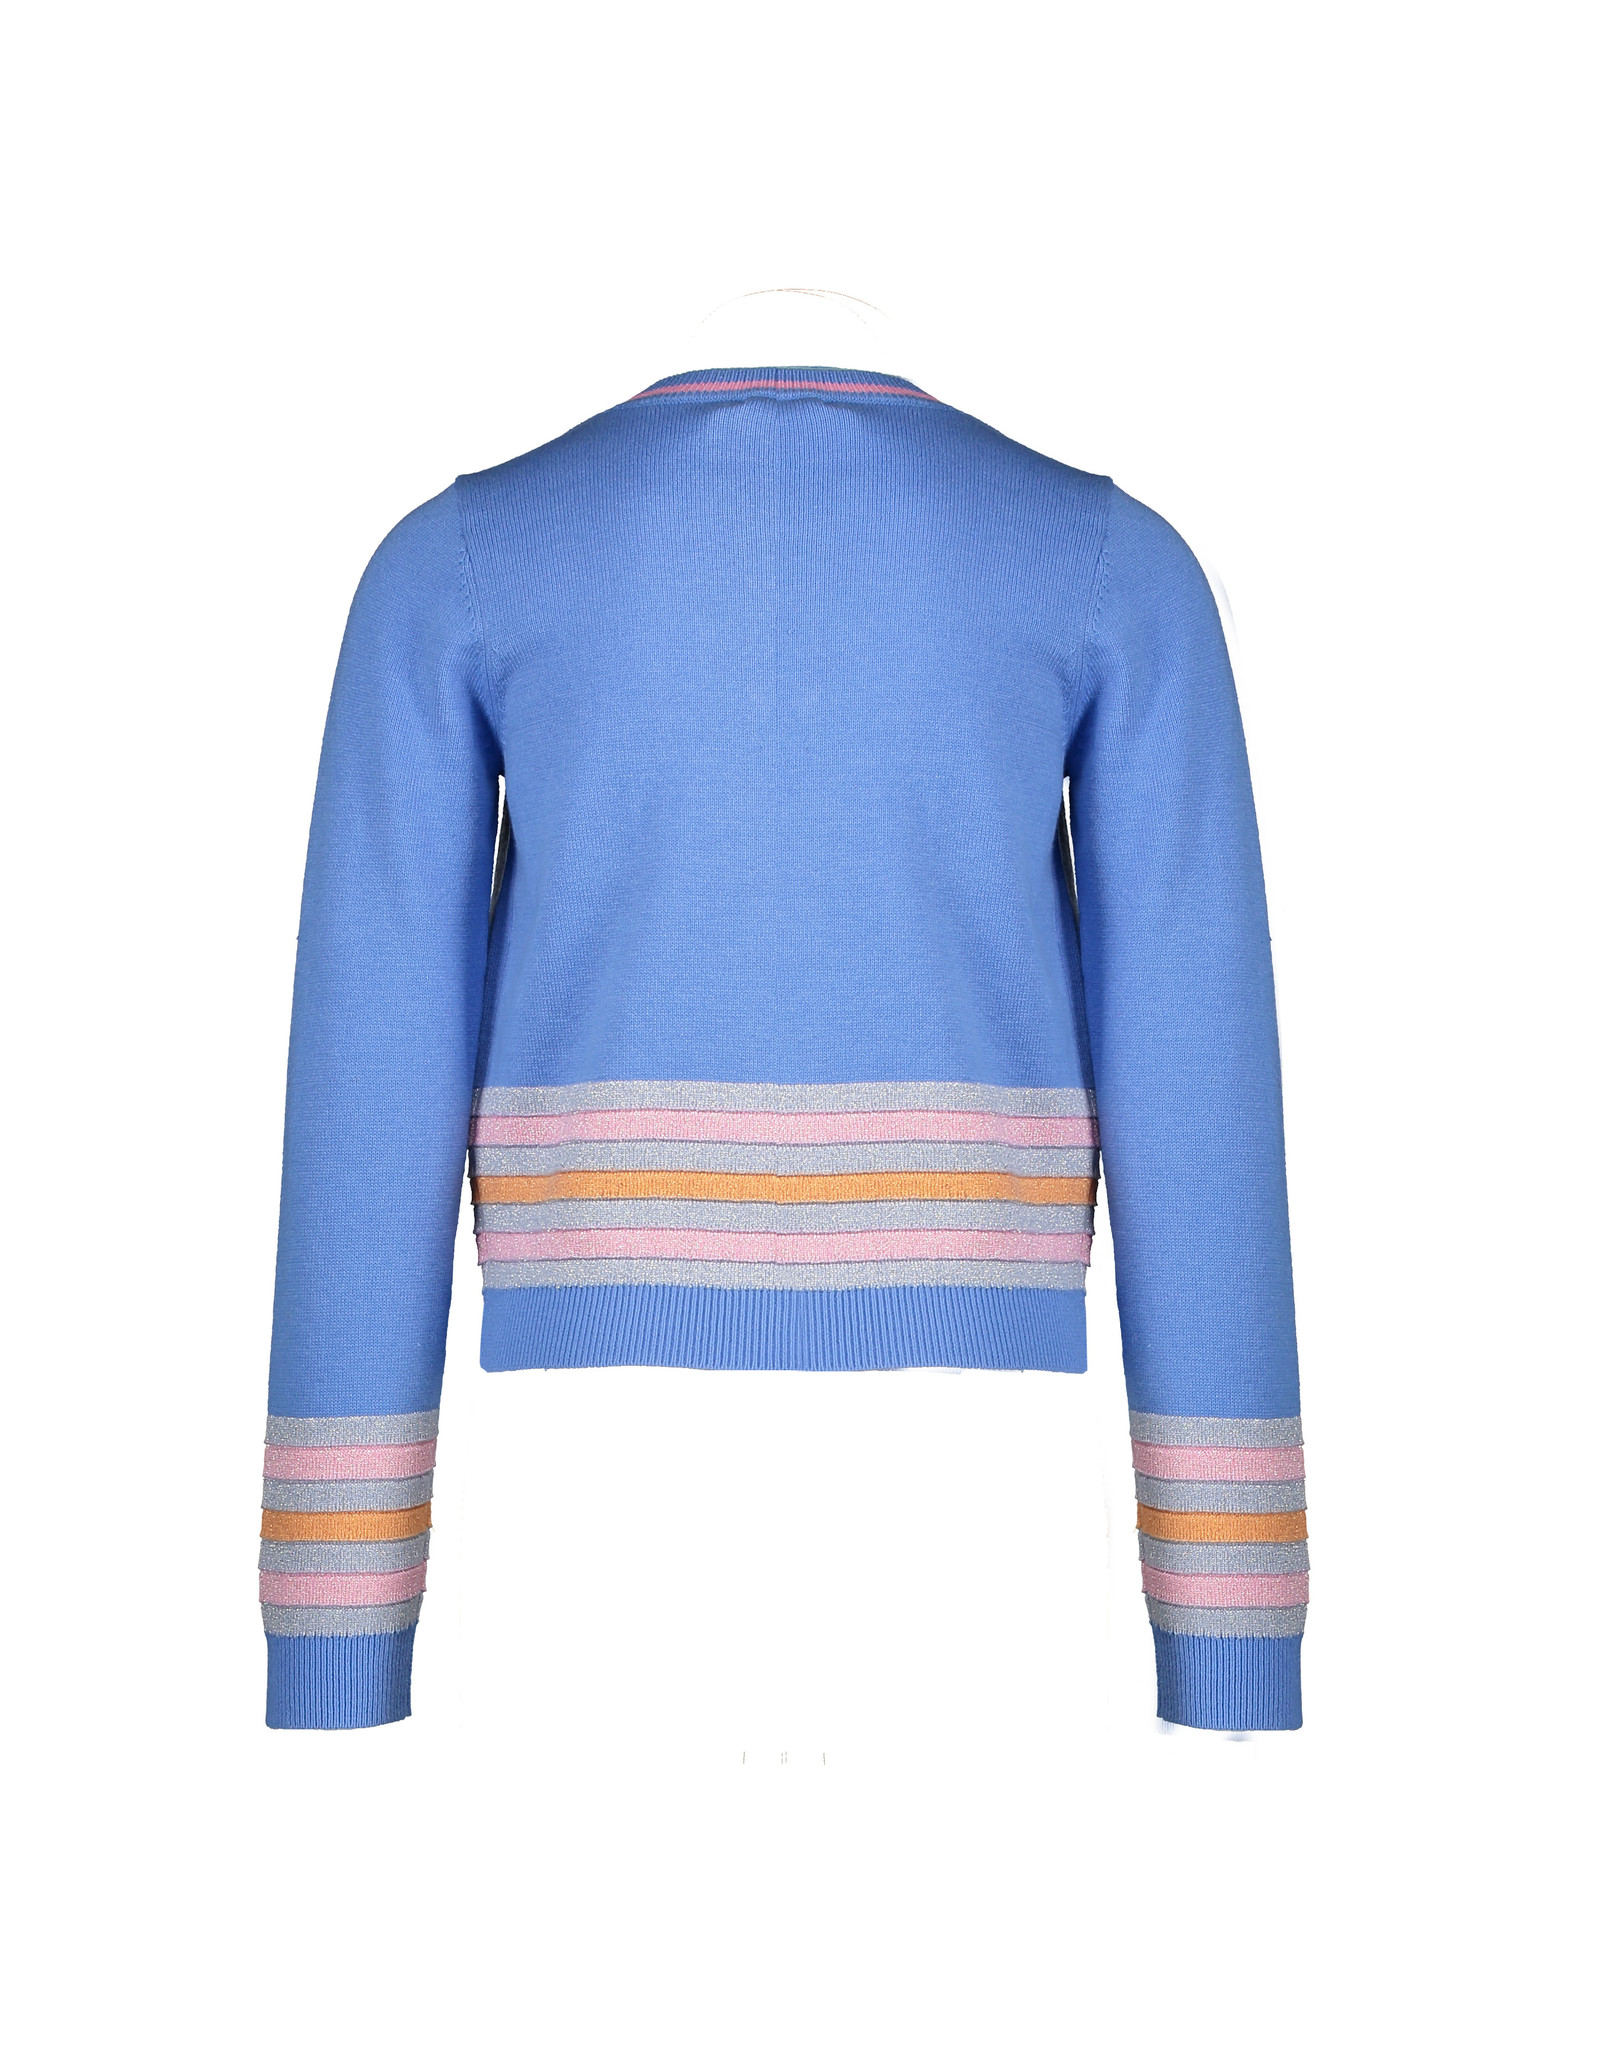 Nono AuraB cardigan solid with stripe detail at hem